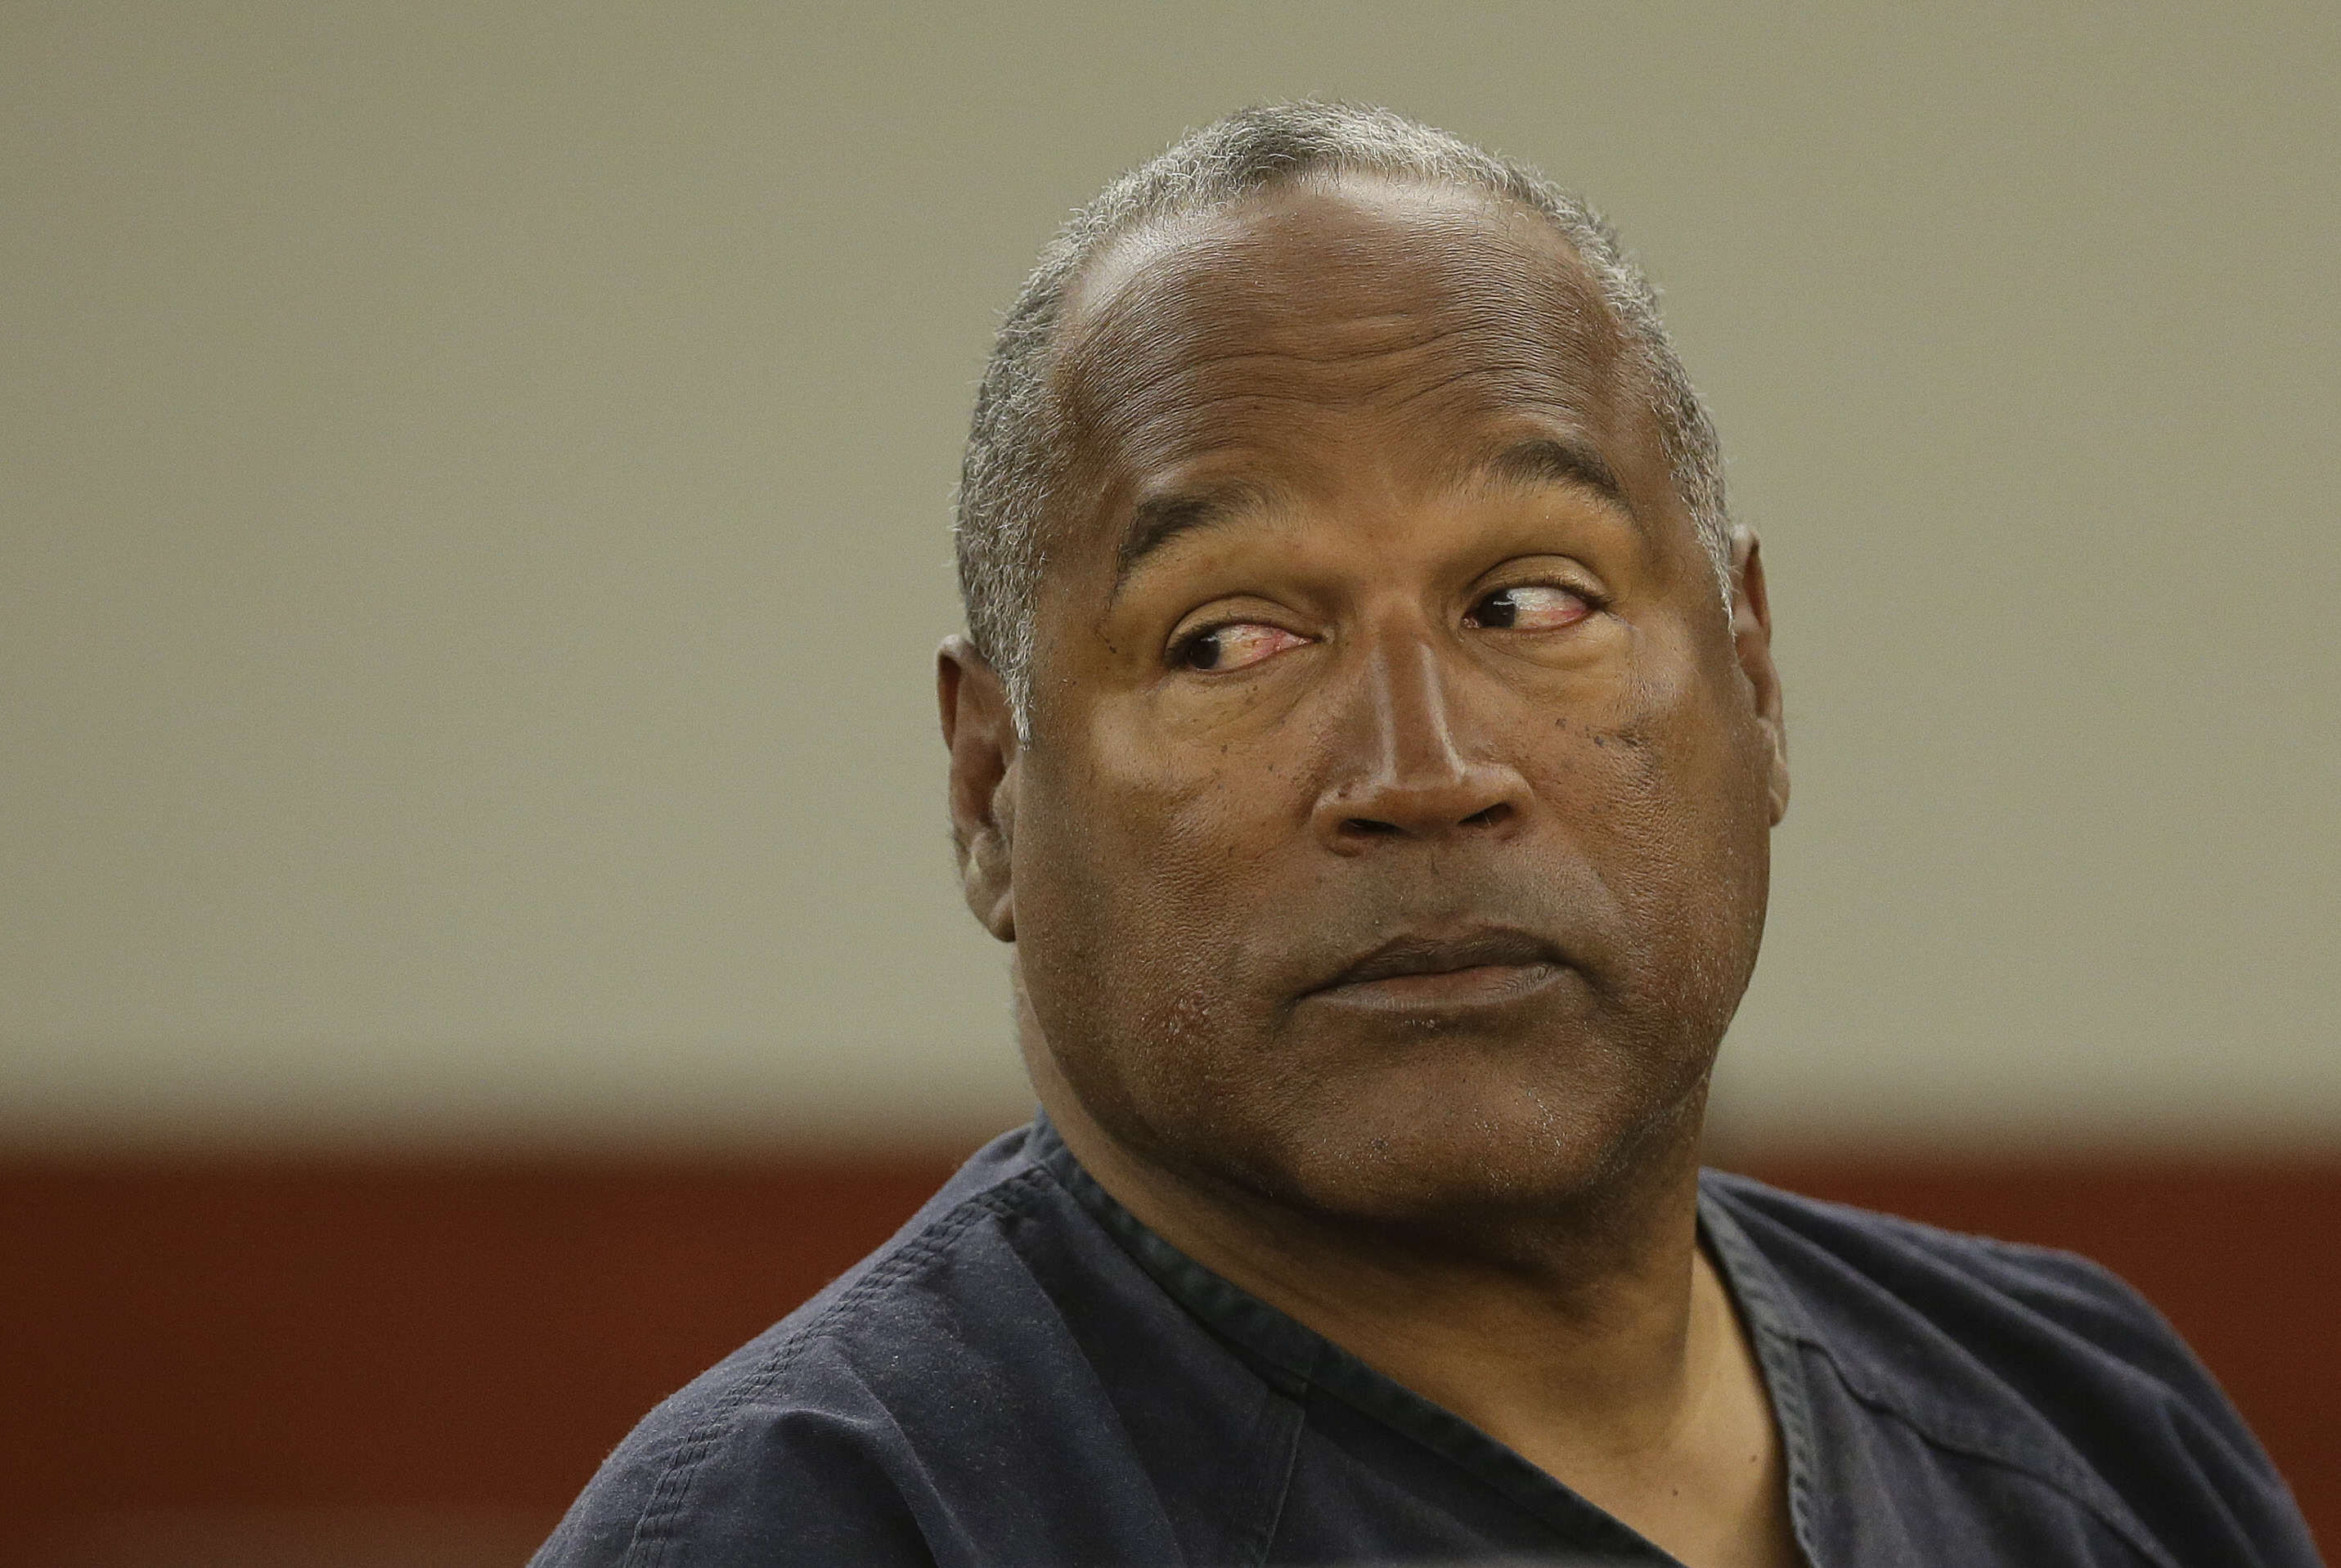 OJ Simpsons Former Manager Says He Knows Who Committed The Murders oj1